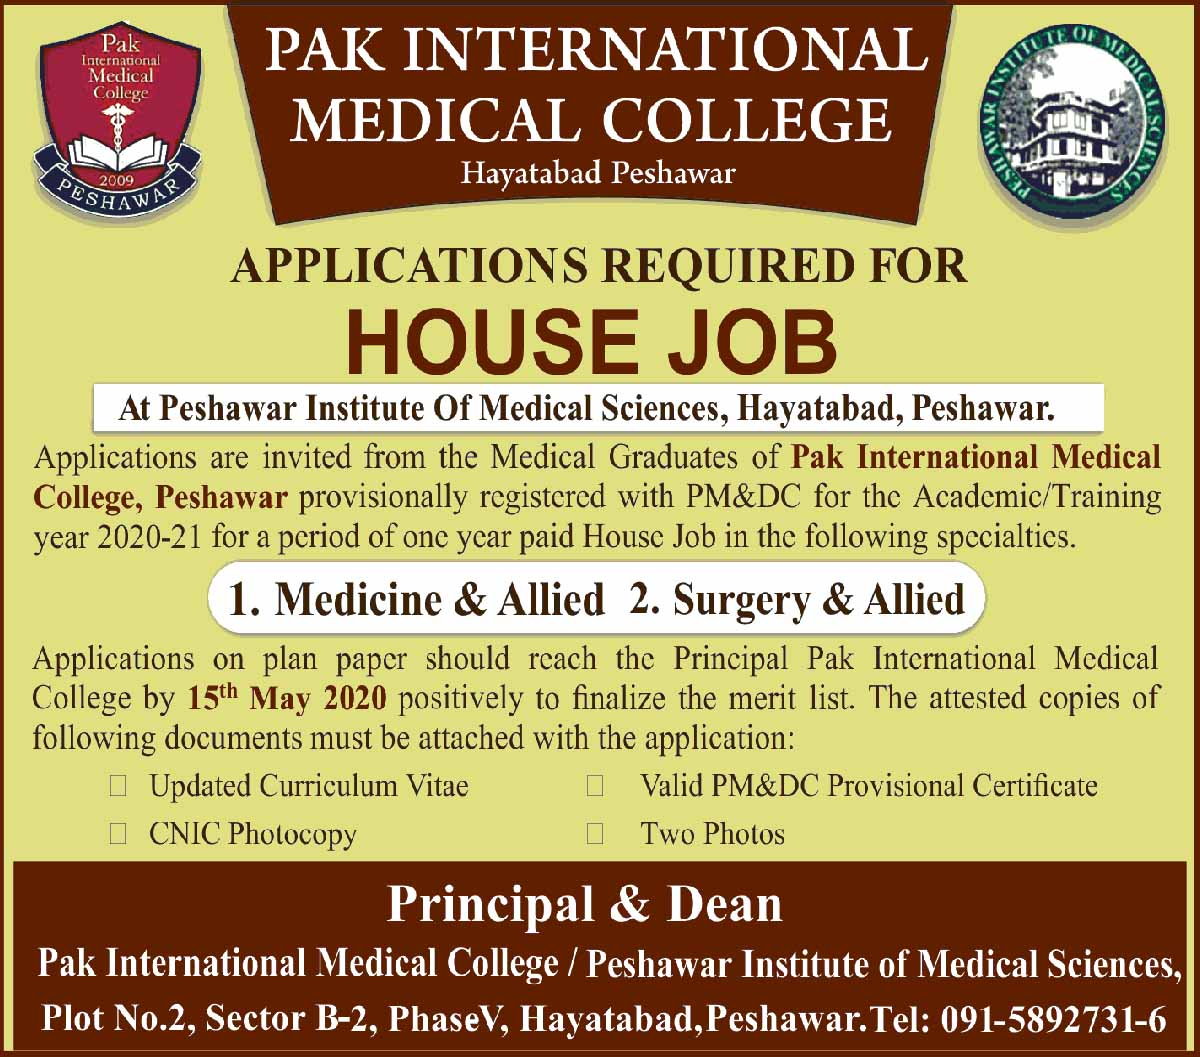 Jobs in Pak International Medical College Peshawar